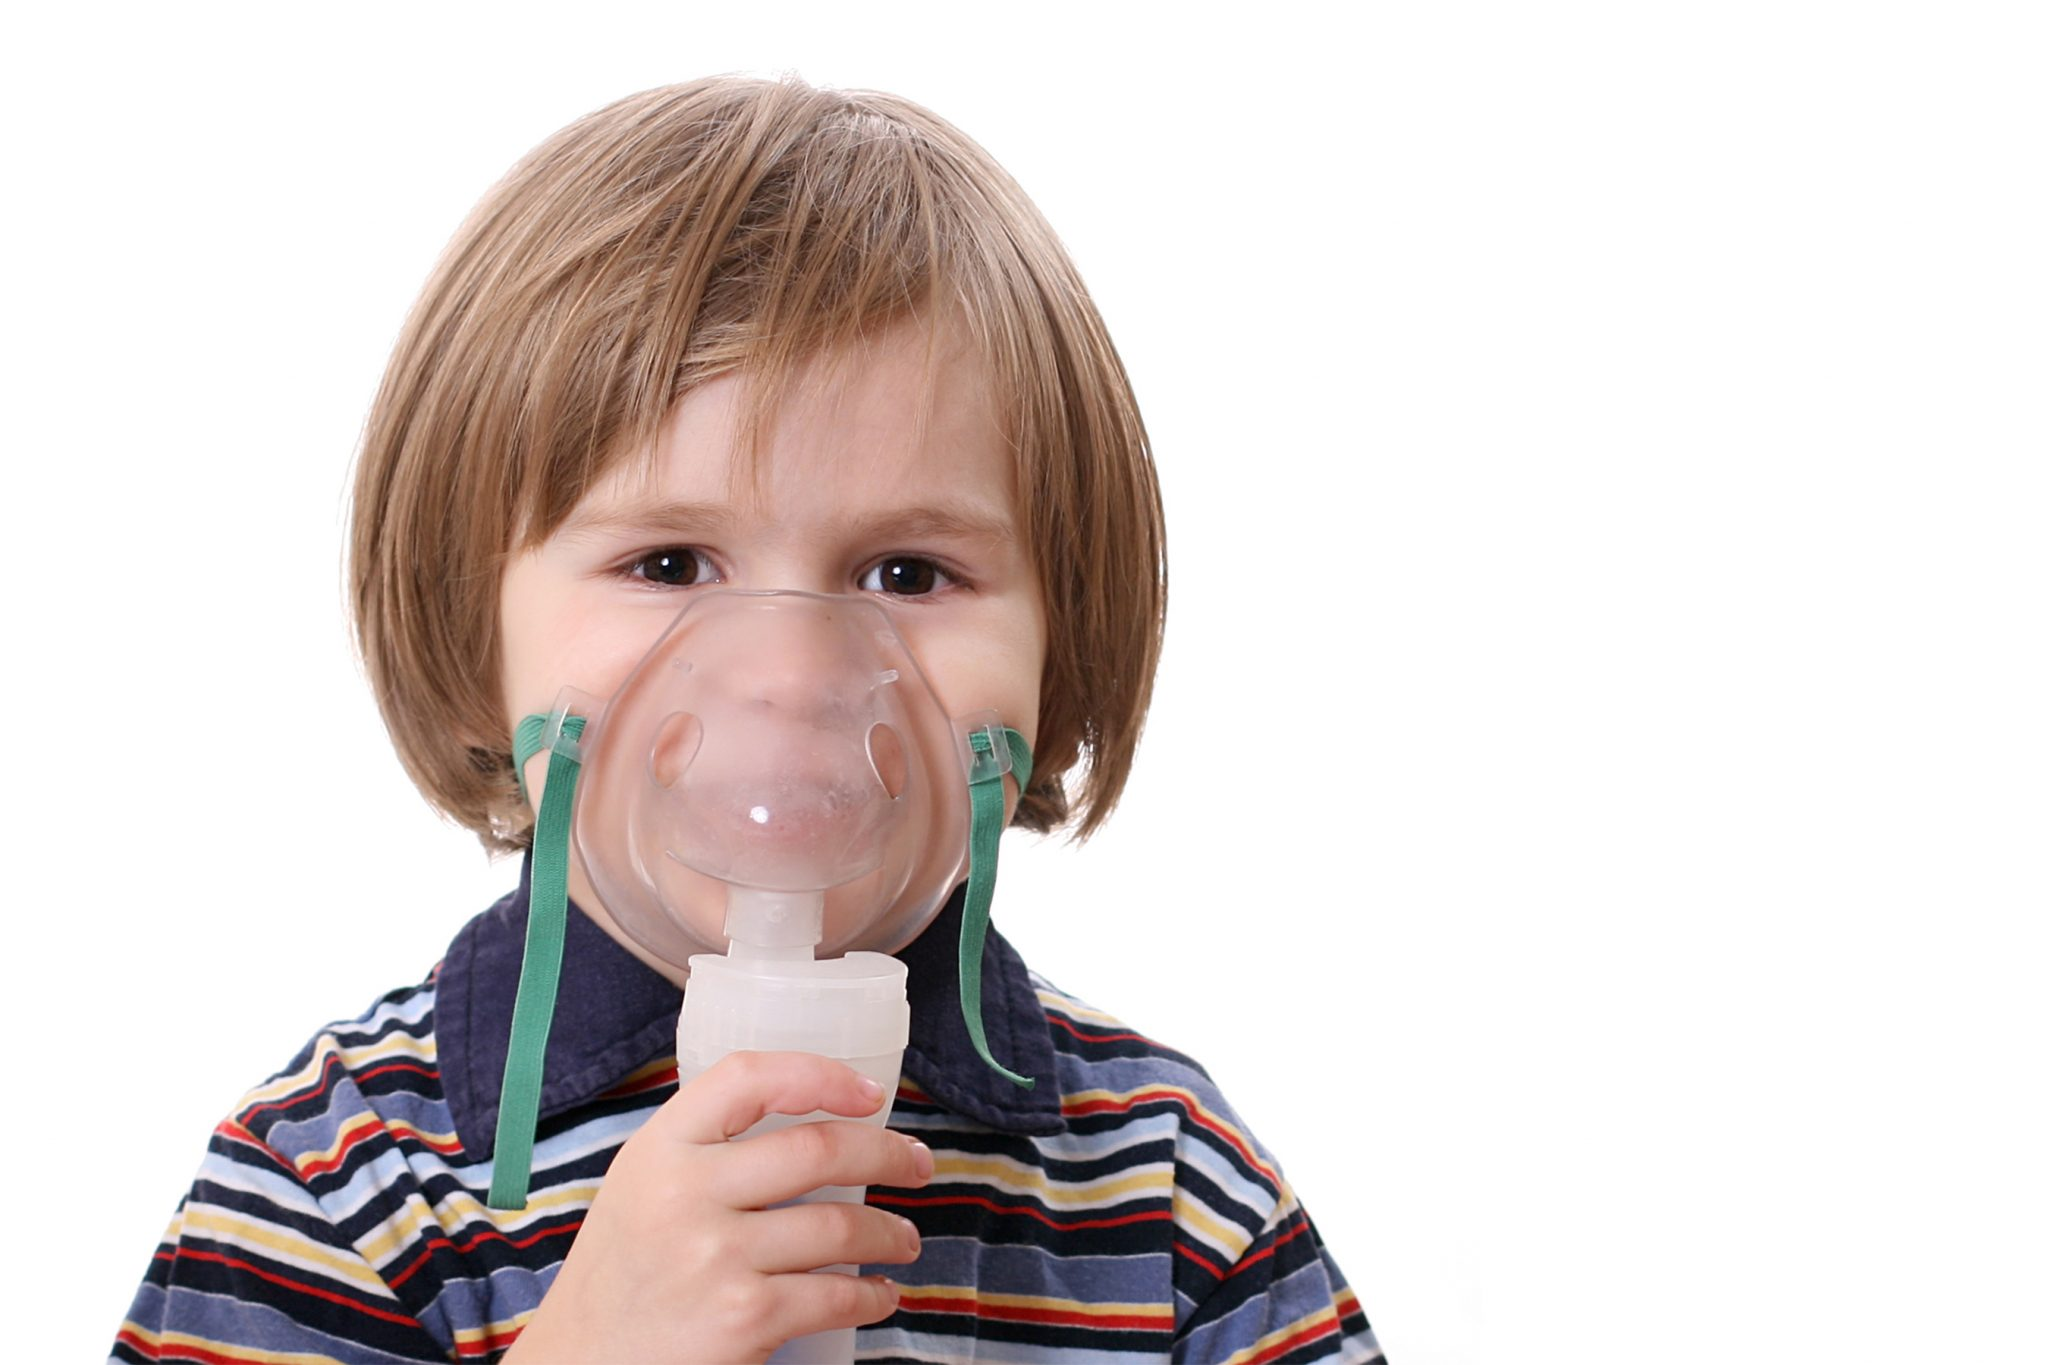 Antibiotic Use in Infants Linked to Asthma & Autism | Natural Health 365